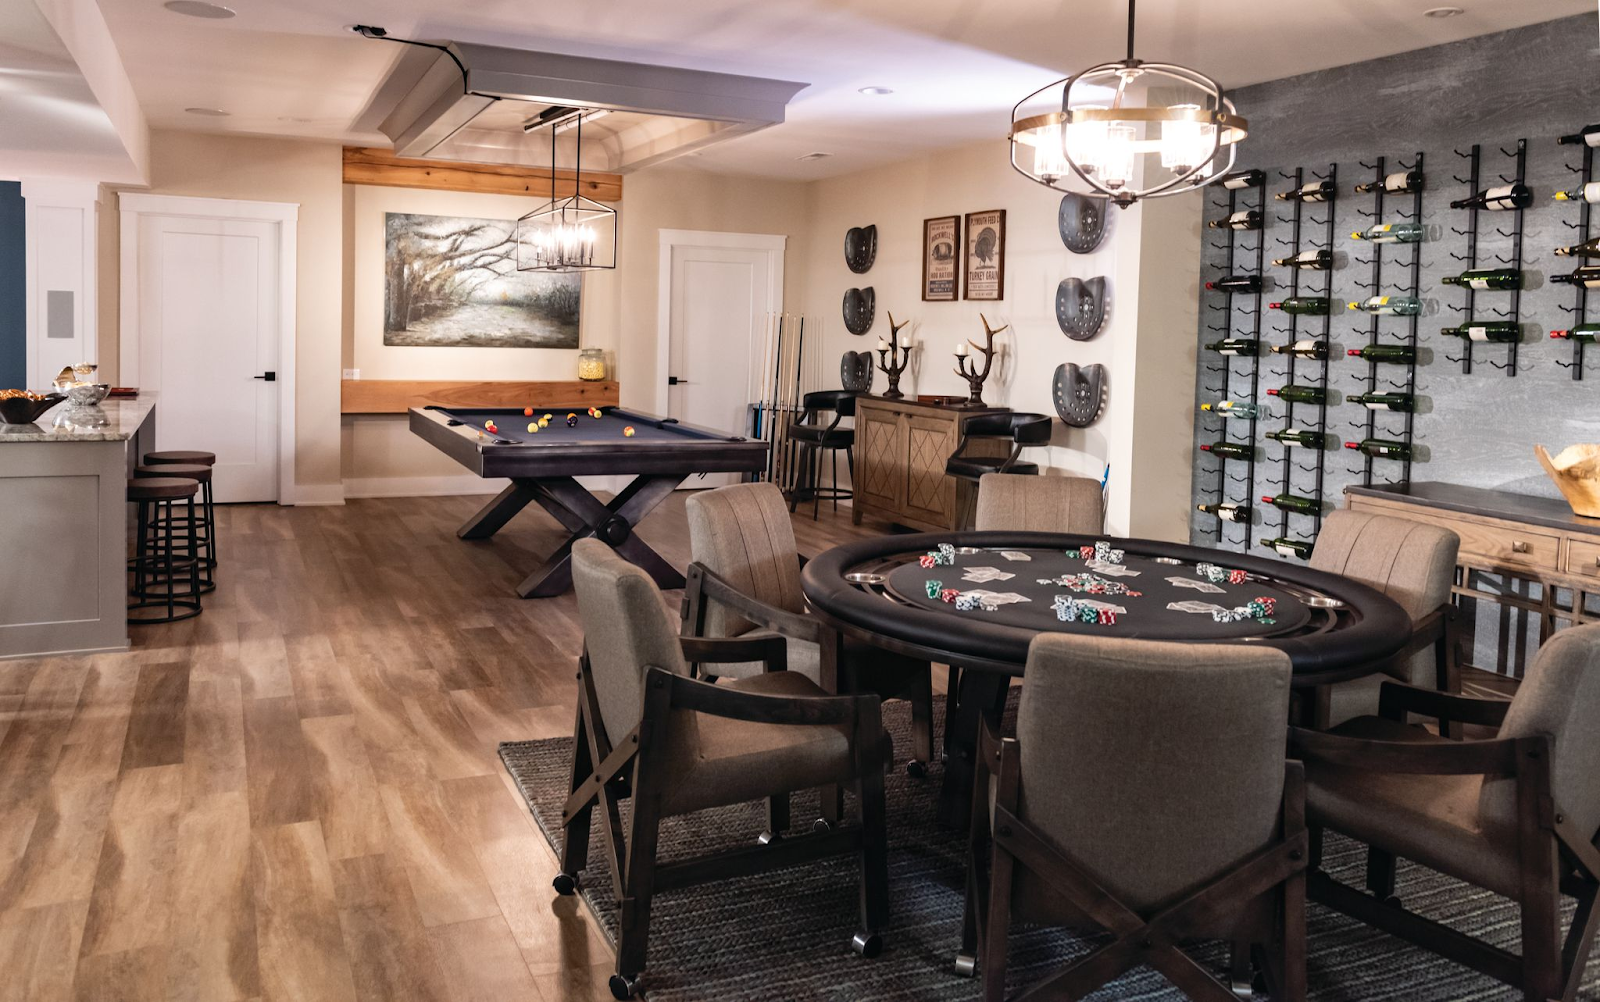 8 Steps to Design a Game Room You'll Love